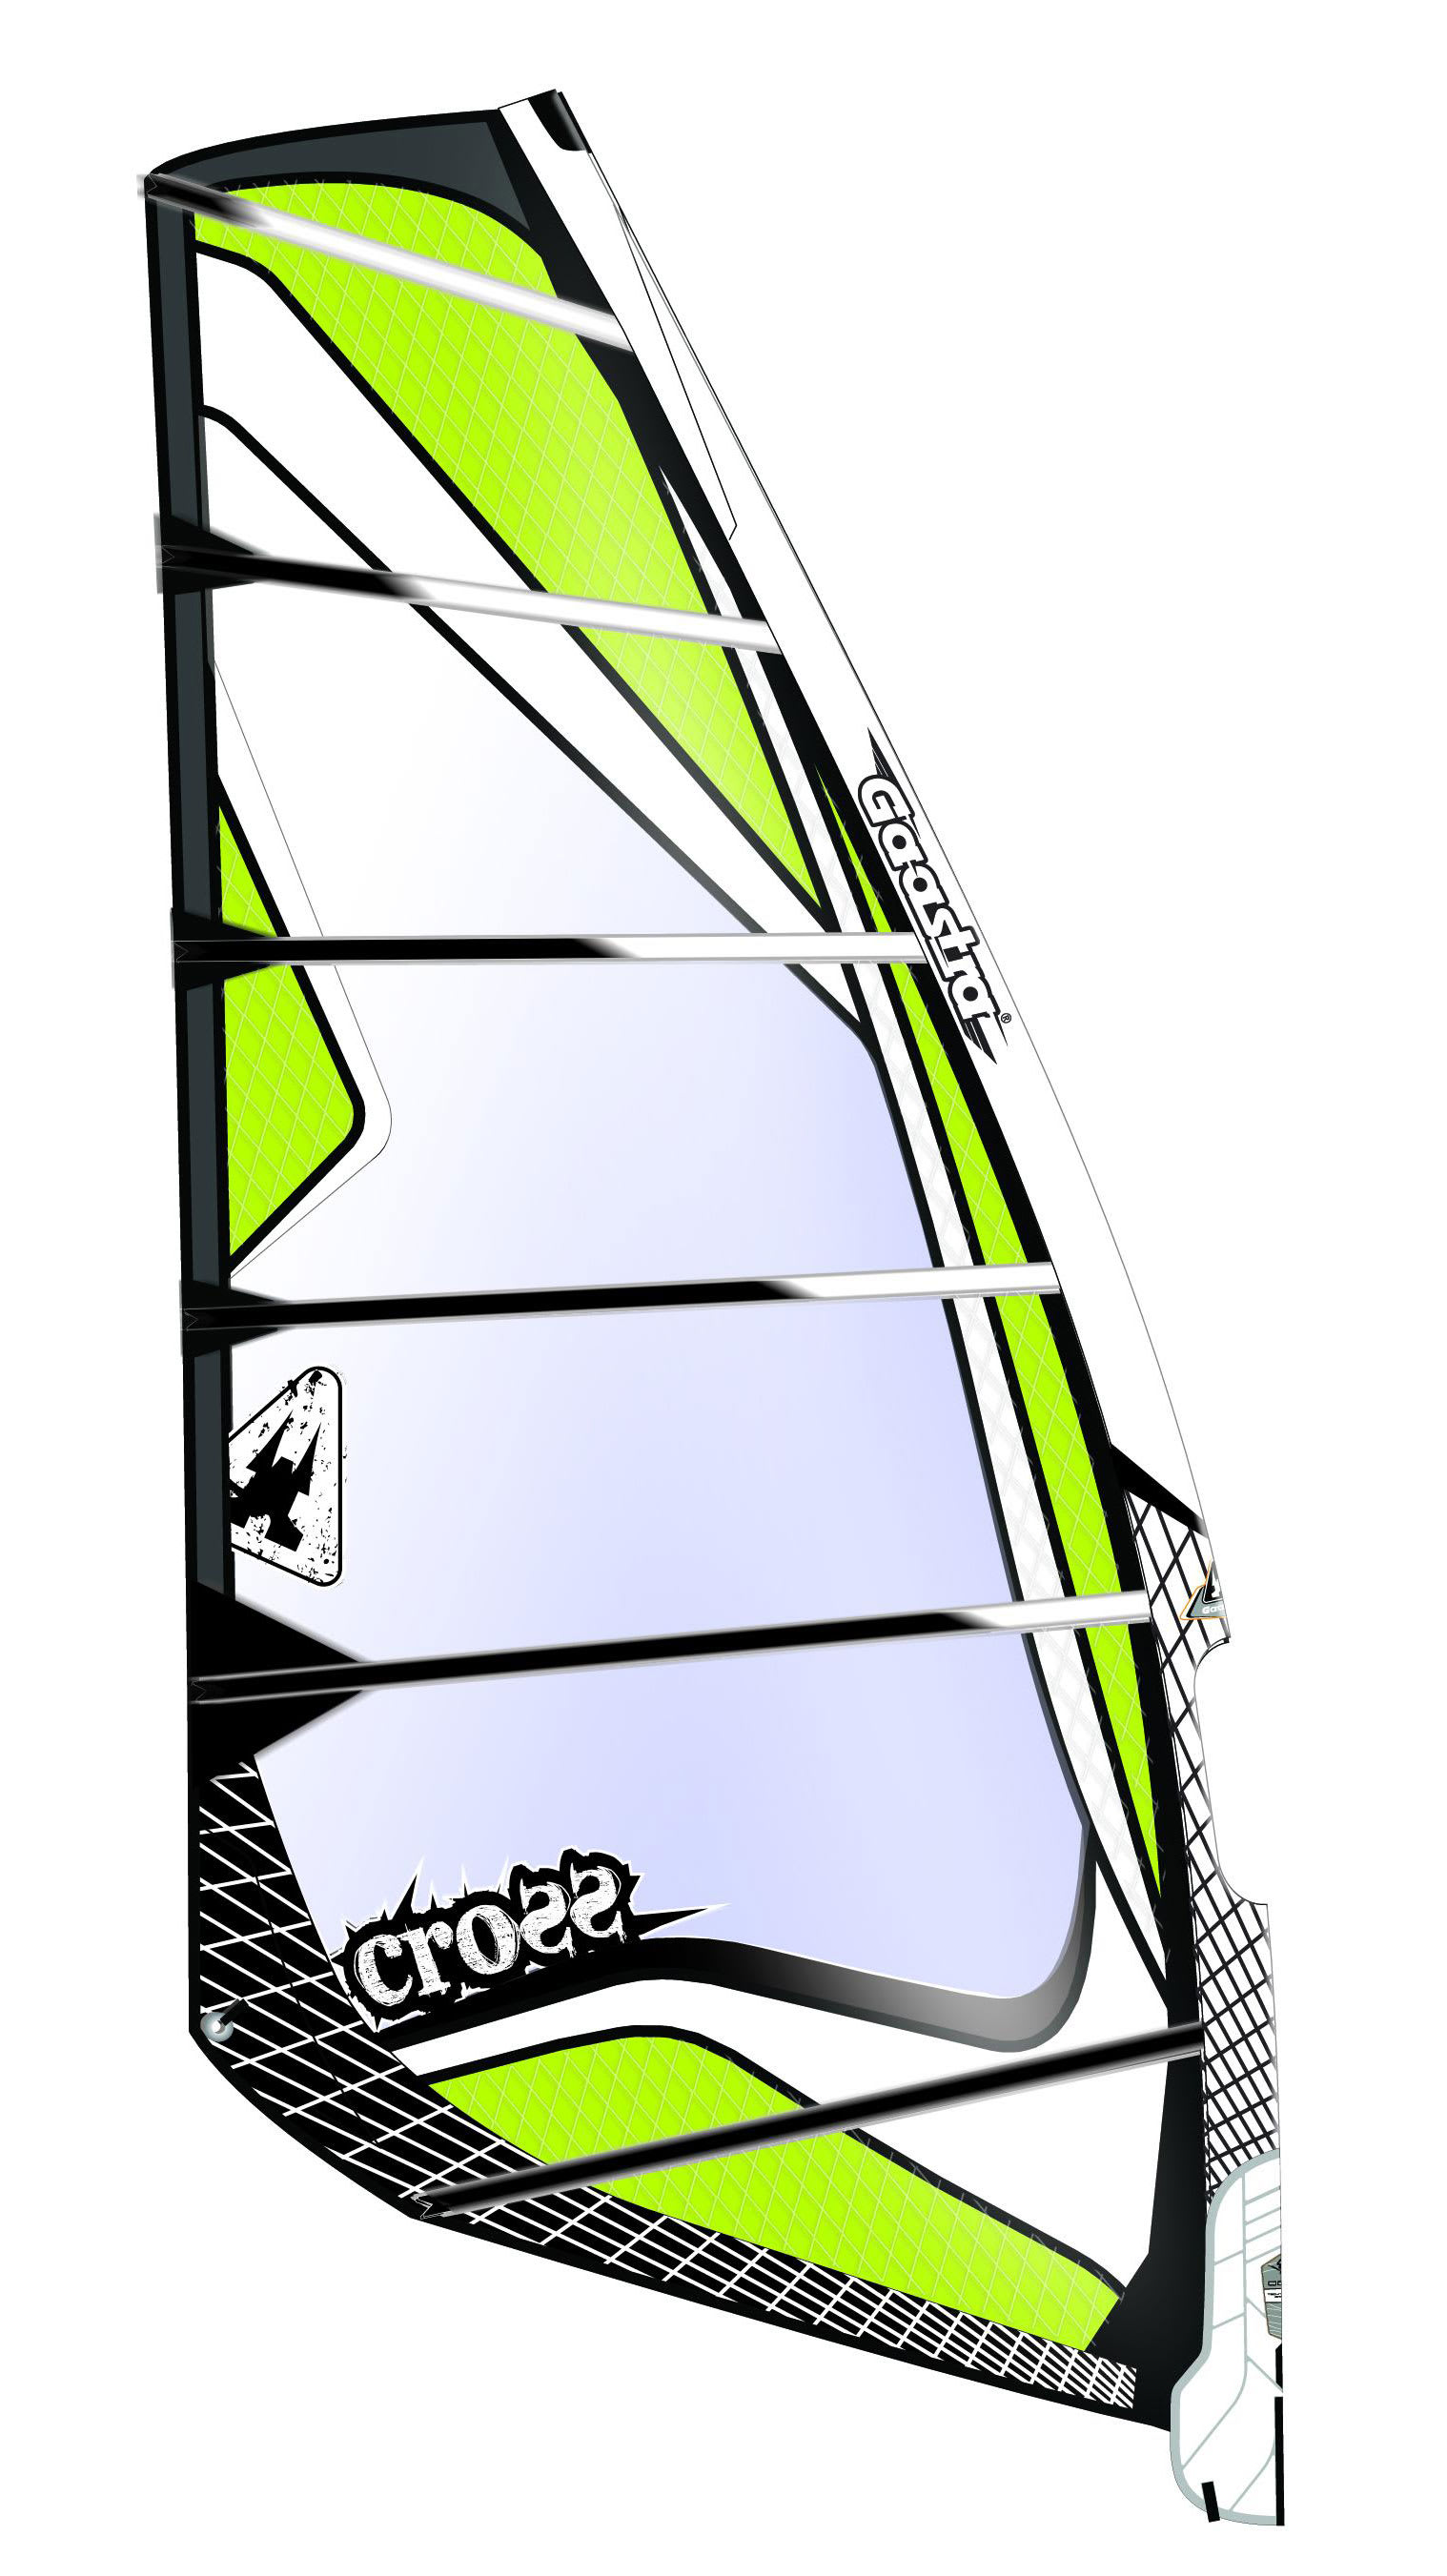 on sale gaastra cross windsurf sail 6 9m up to 70 off. Black Bedroom Furniture Sets. Home Design Ideas